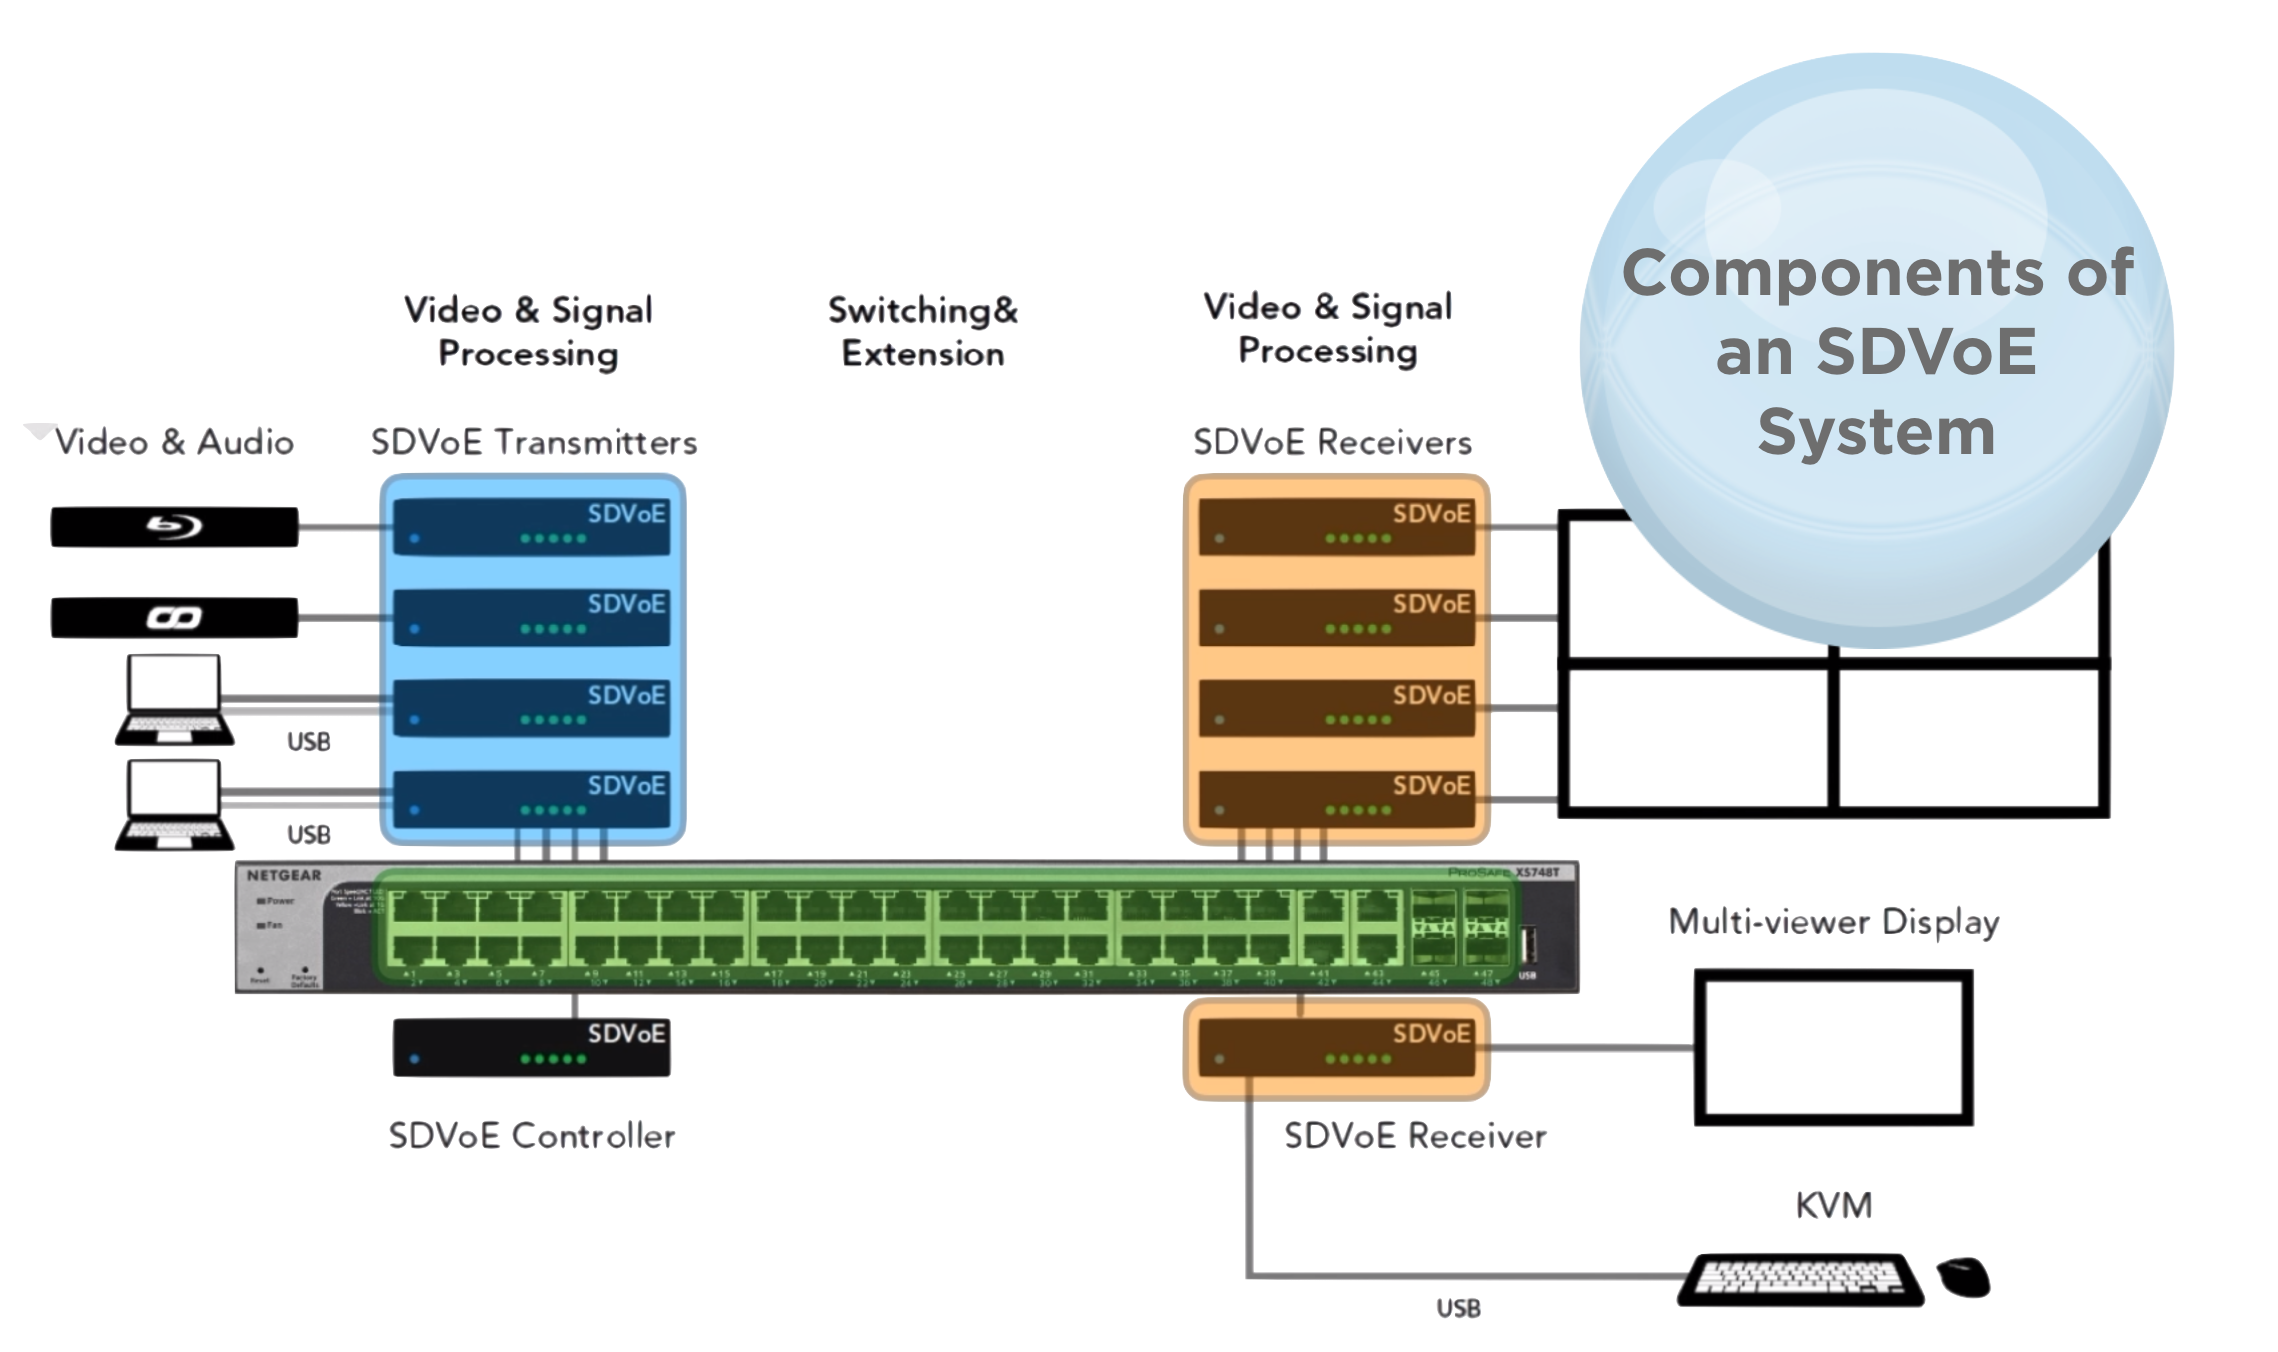 Components of an SDVoE System